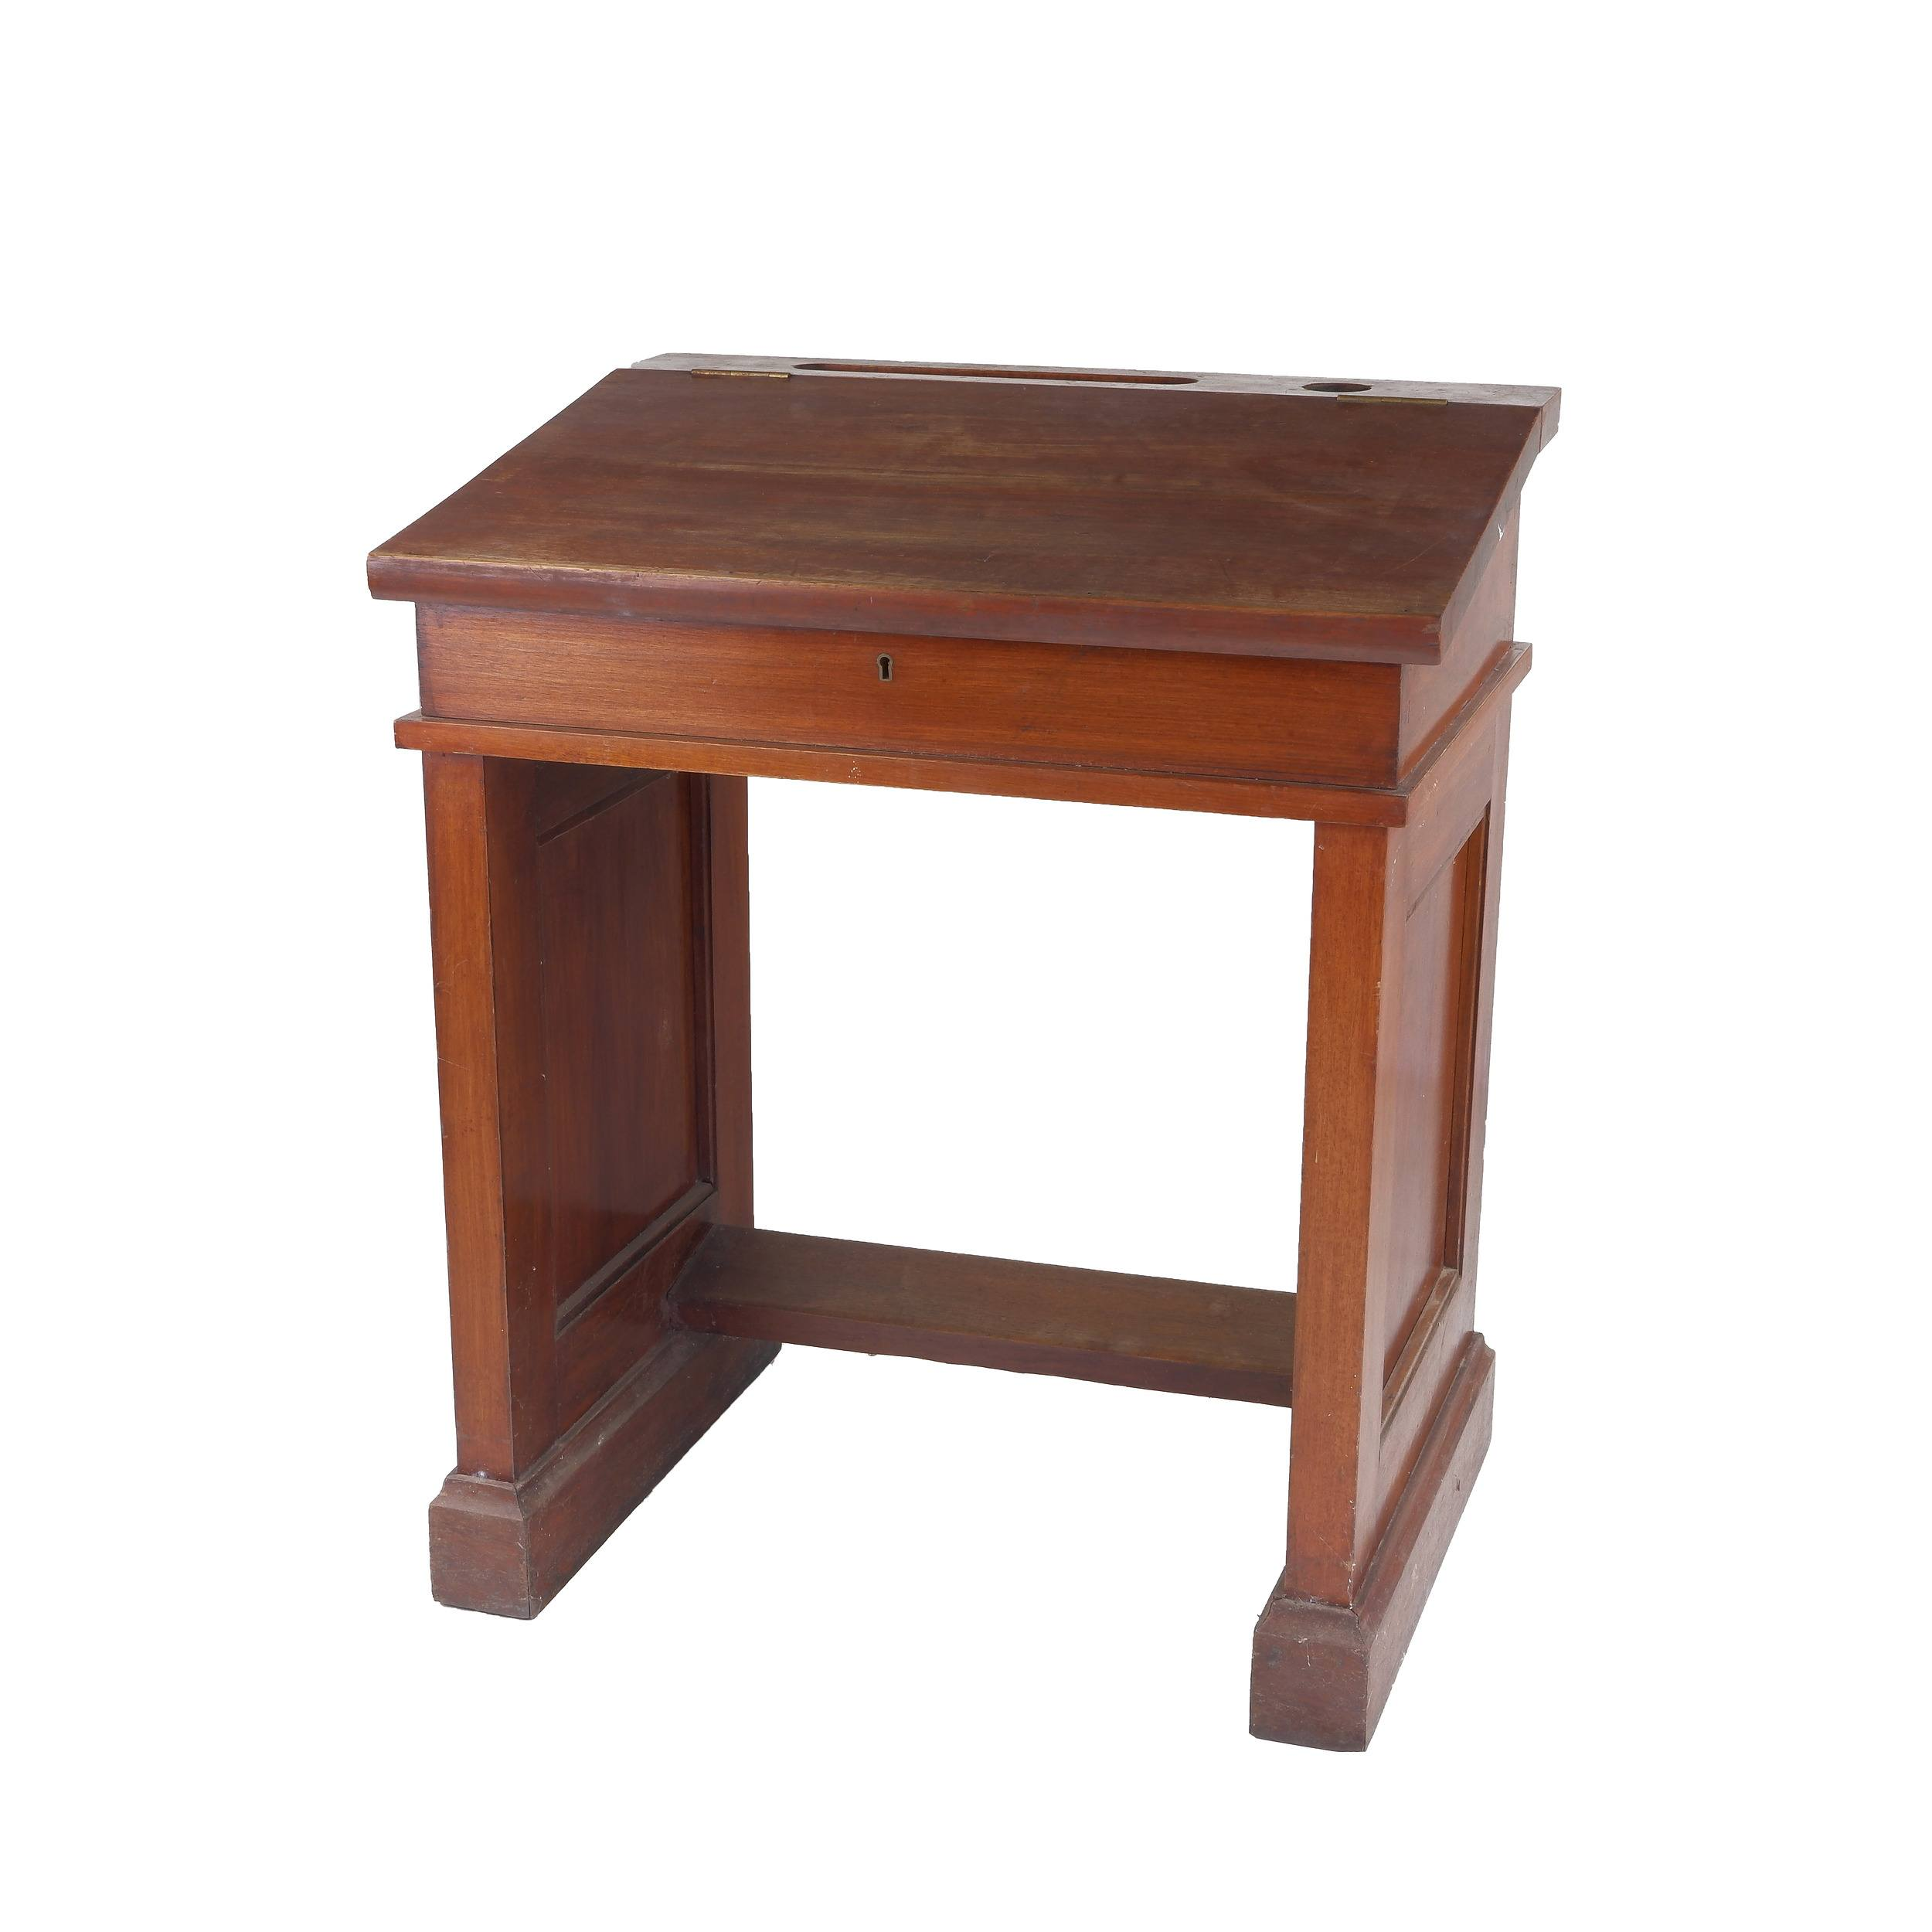 'Good Solid Tasmanian Blackwood School or Clerks Desk Circa 1920s'